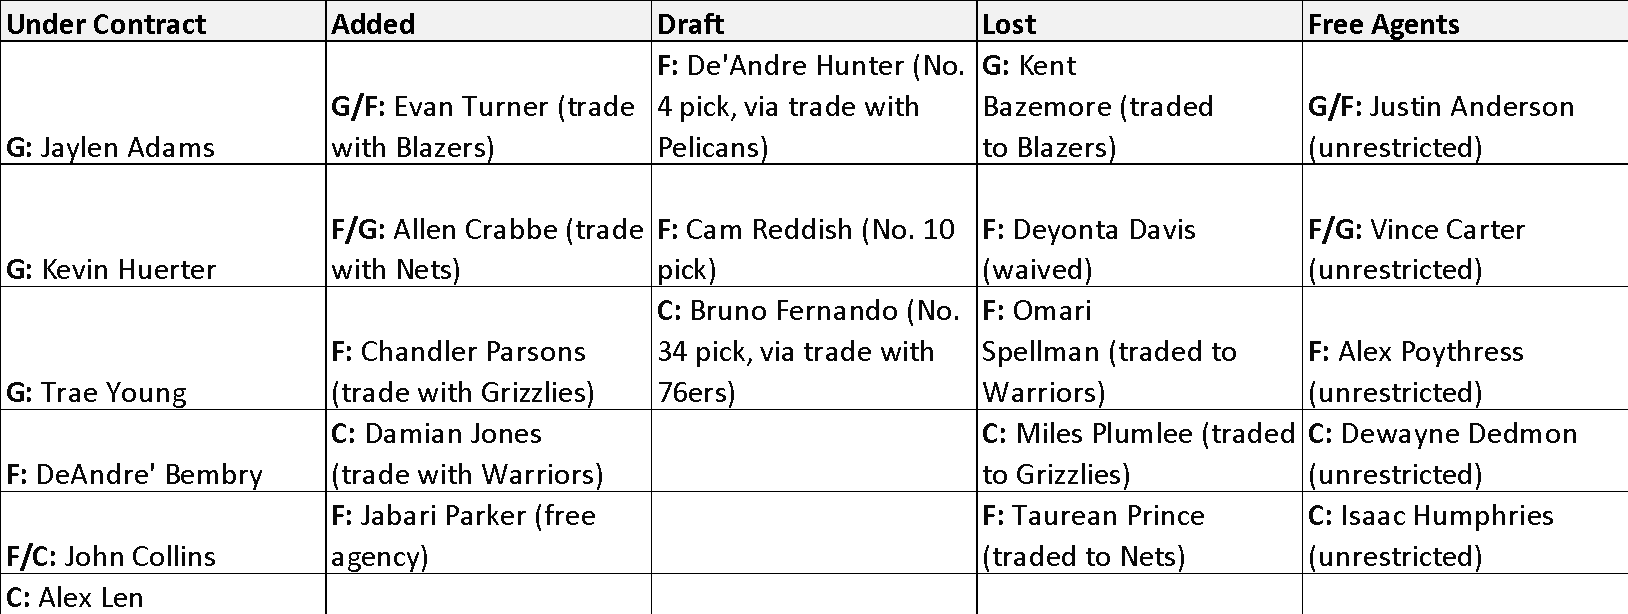 Hawks Offseason Moves